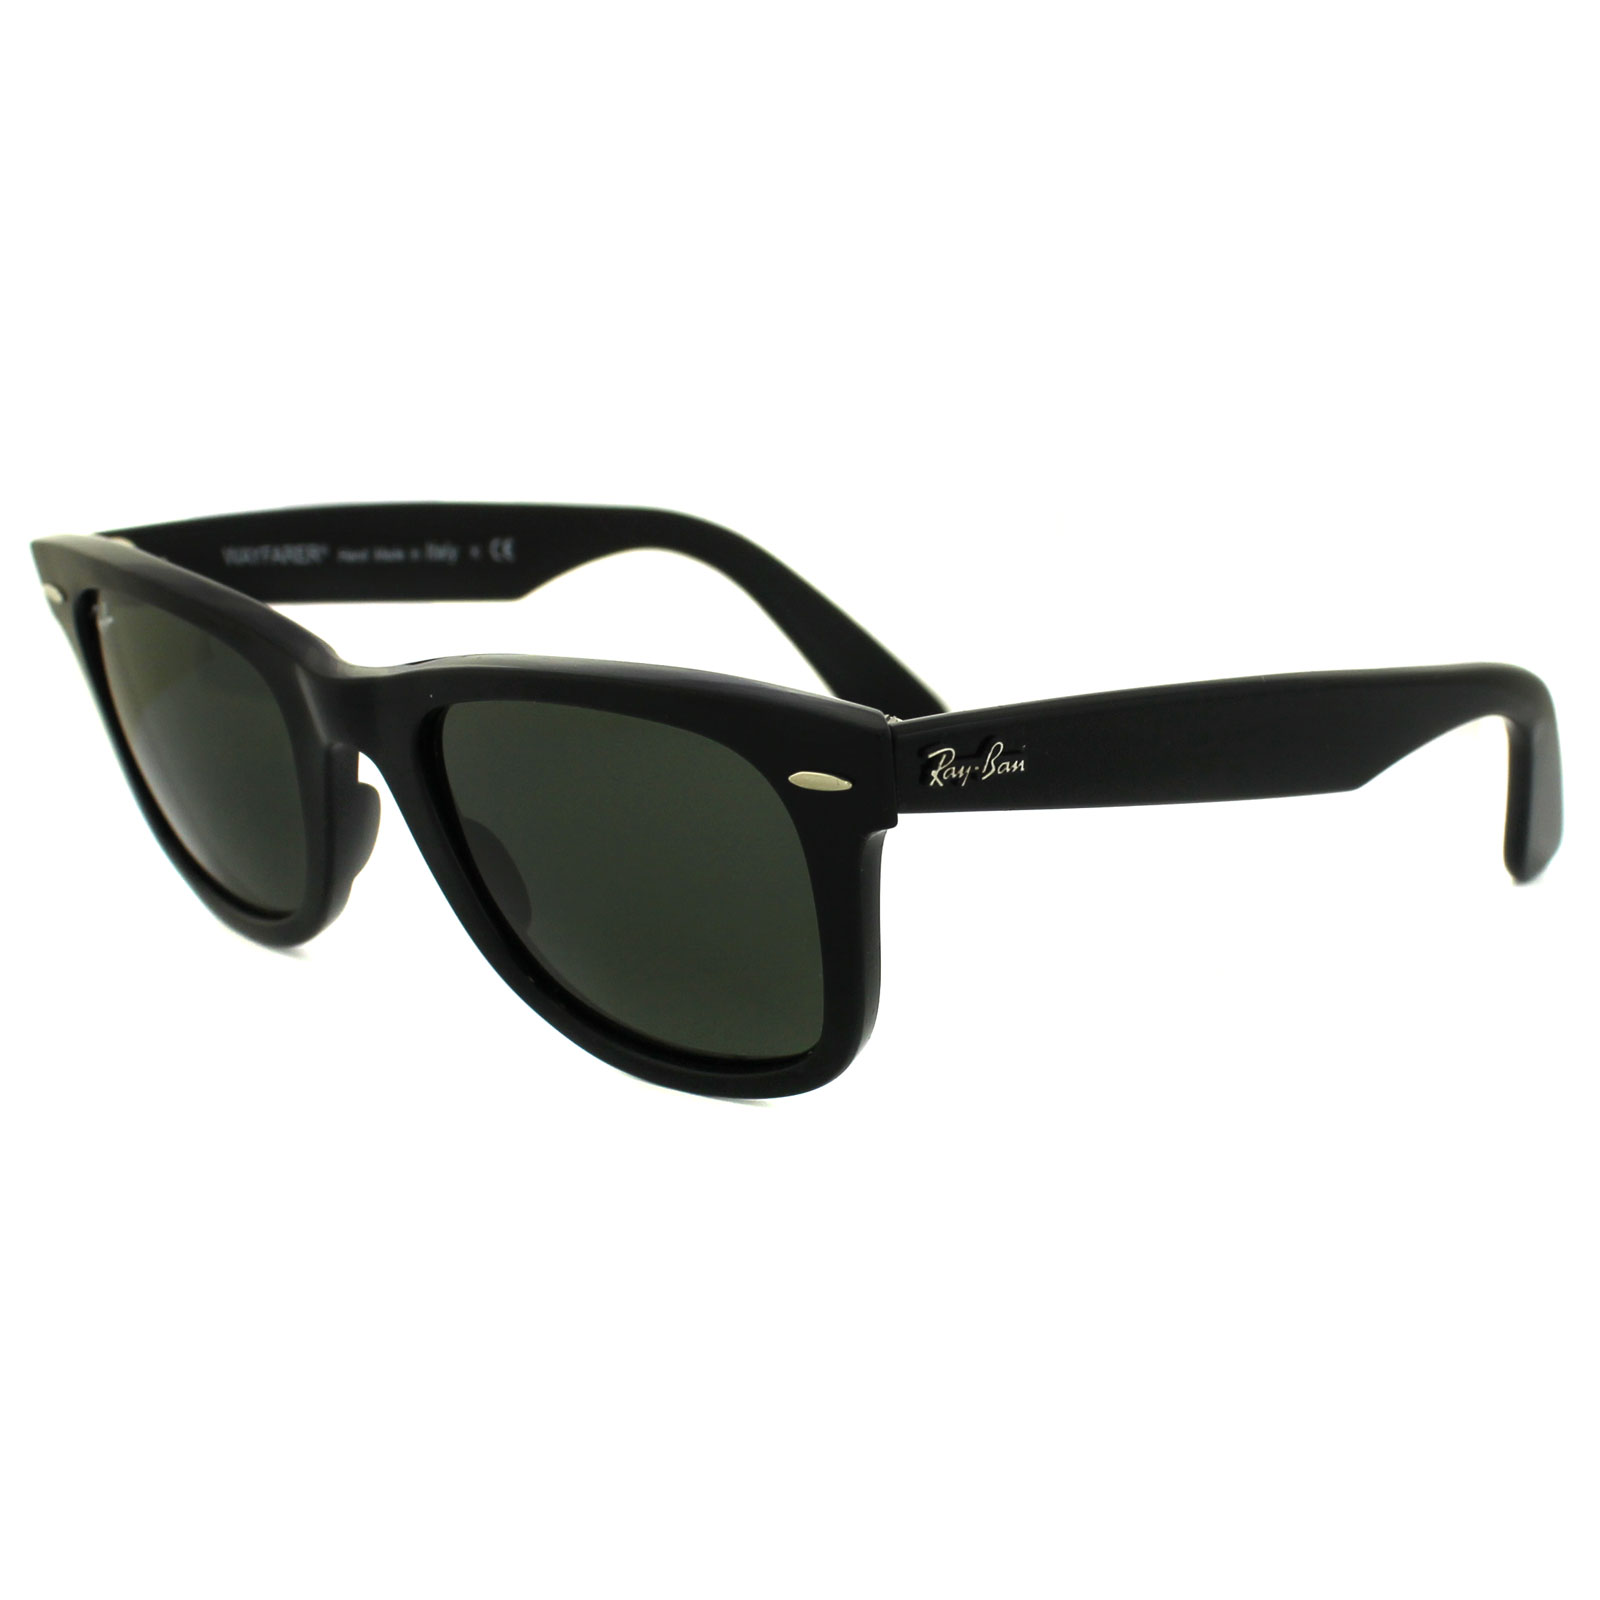 a962e6ea5f Cheap Ray-Ban Wayfarer 2140 Sunglasses - Discounted Sunglasses